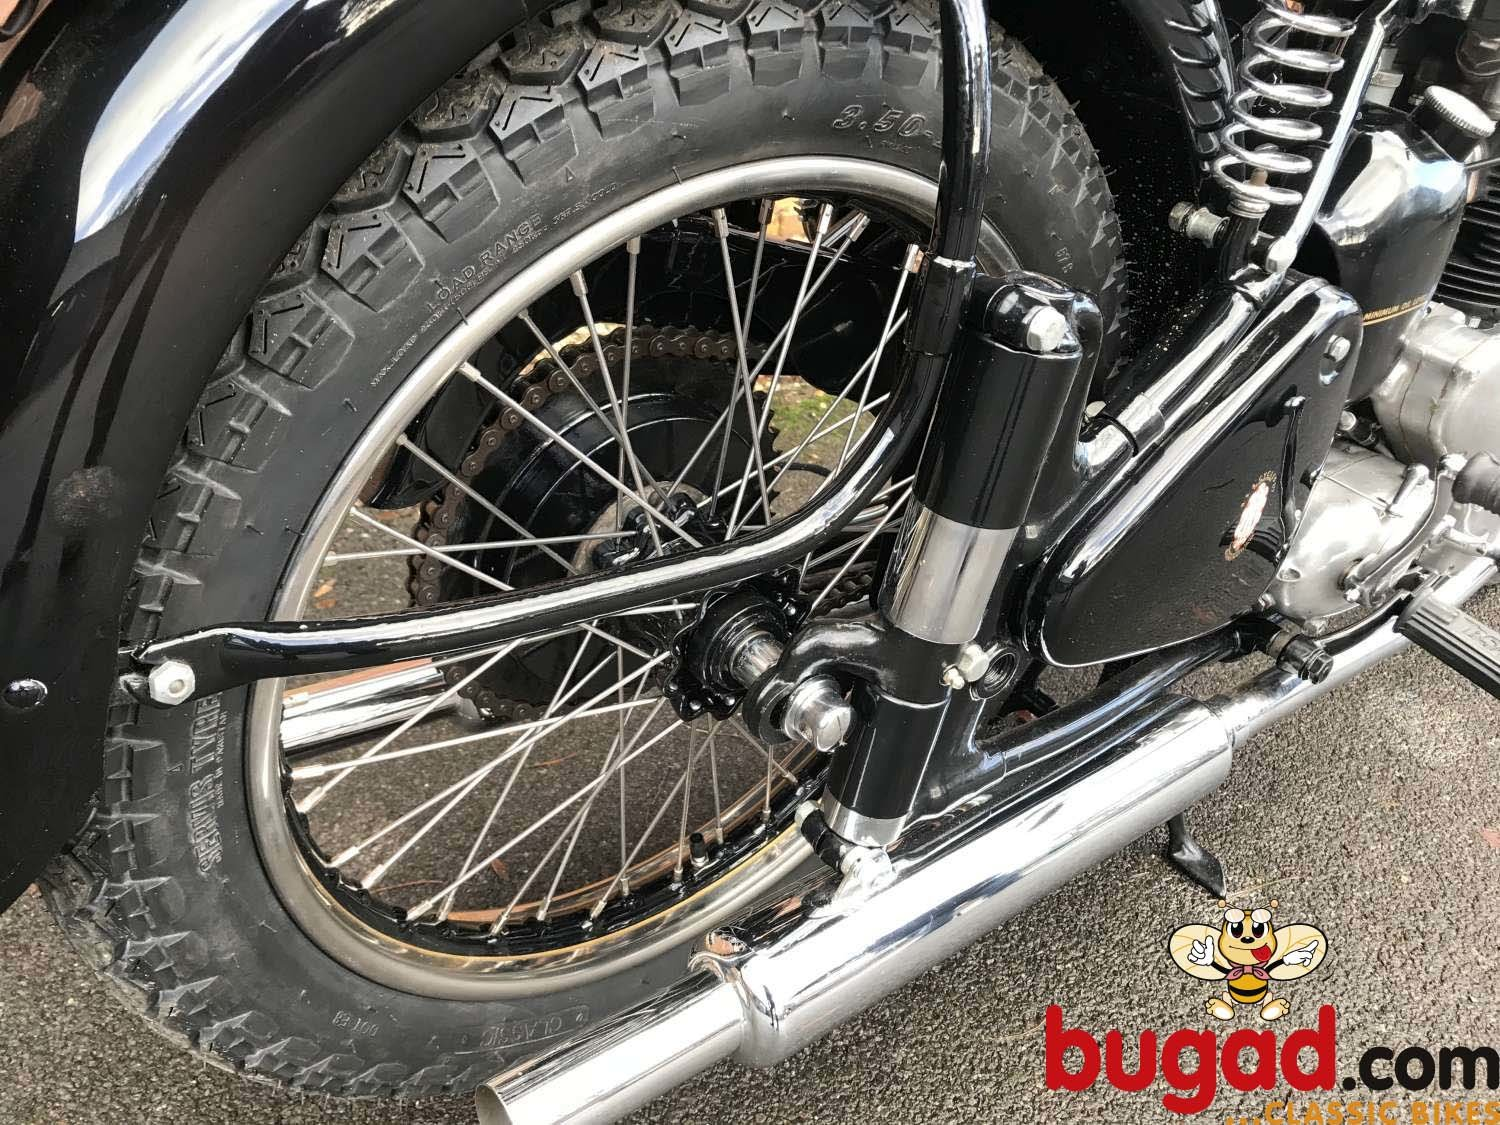 BSA A7 500cc - 1949 - Long Stroke - Plunger - Restored For Sale (picture 5 of 12)